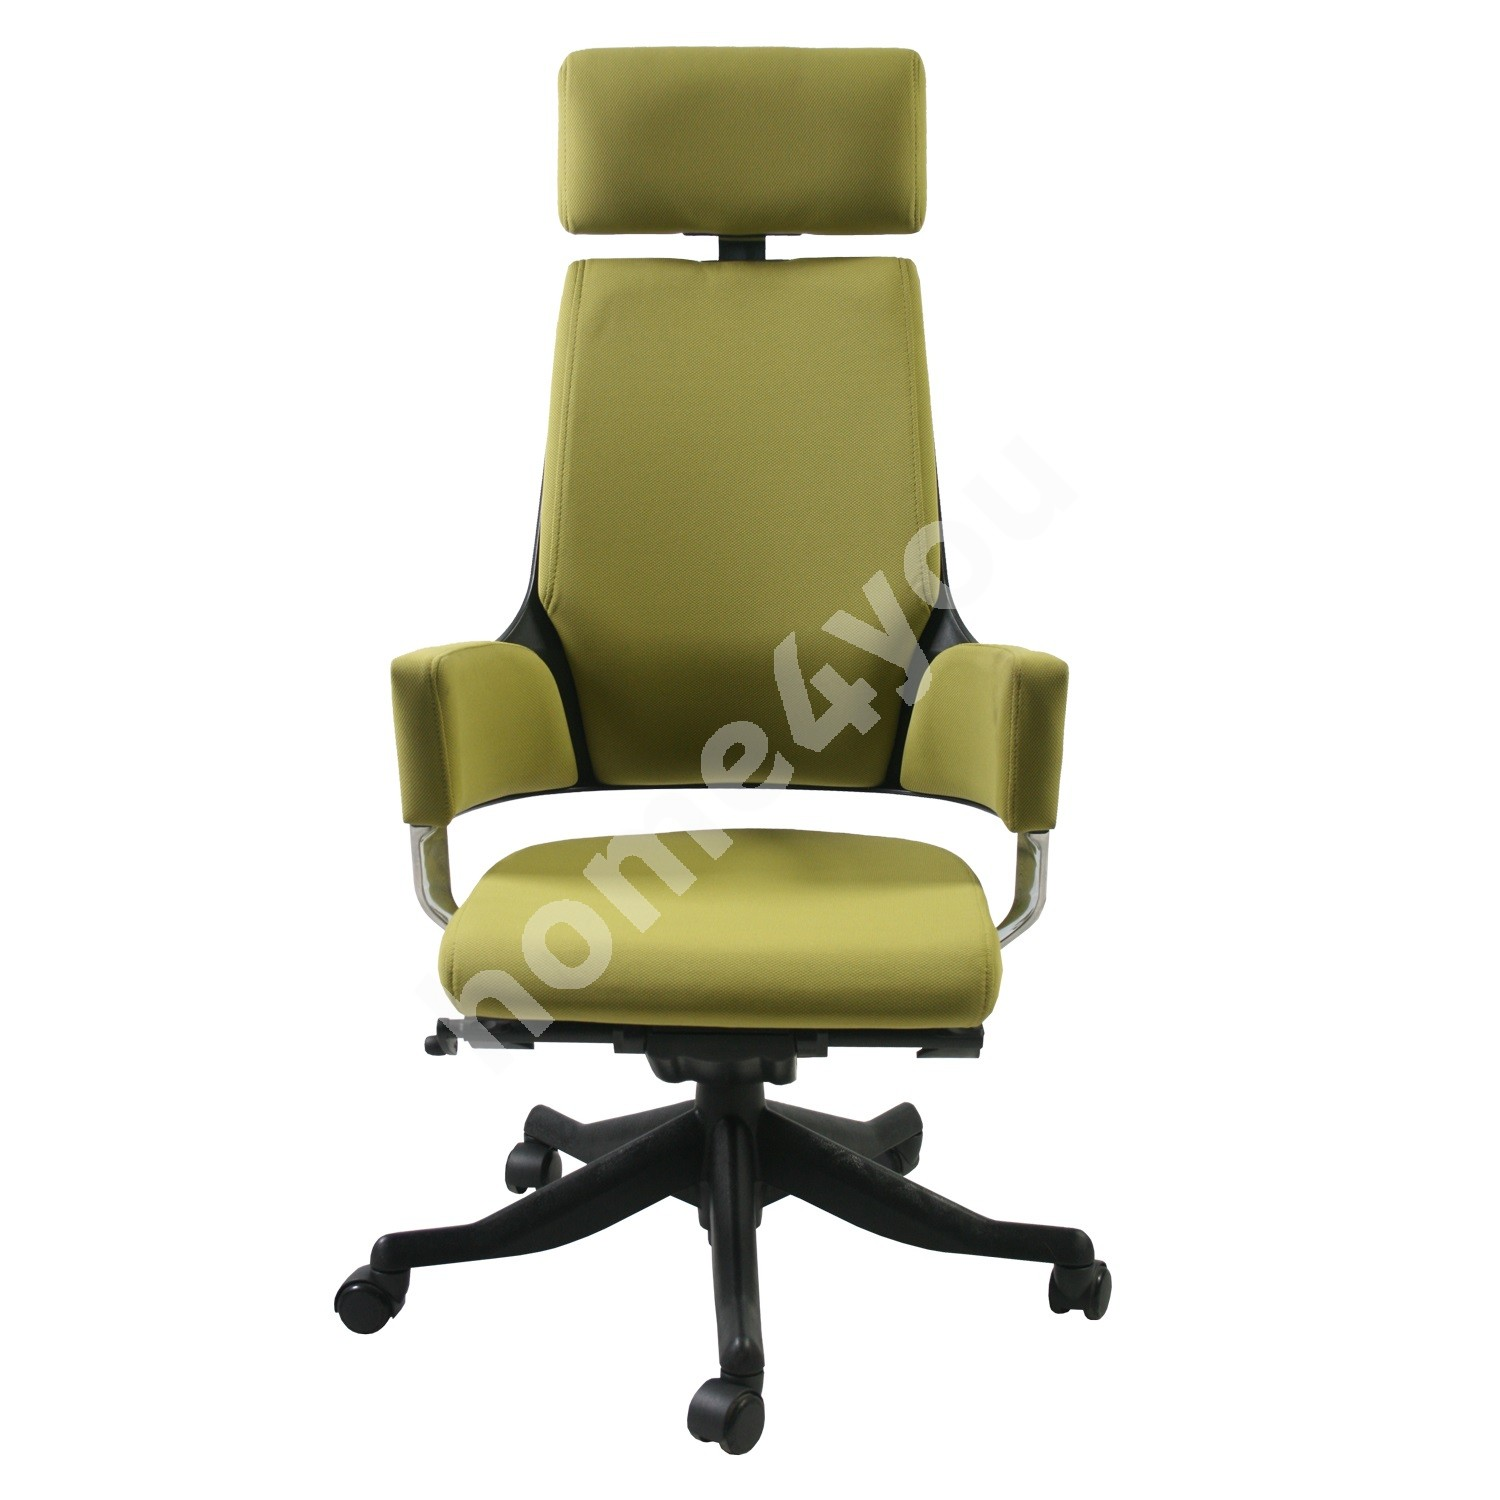 Task chair DELPHI with headrest, 60xD47xH116-128,5cm, seat and back rest: fabric, color: olive green